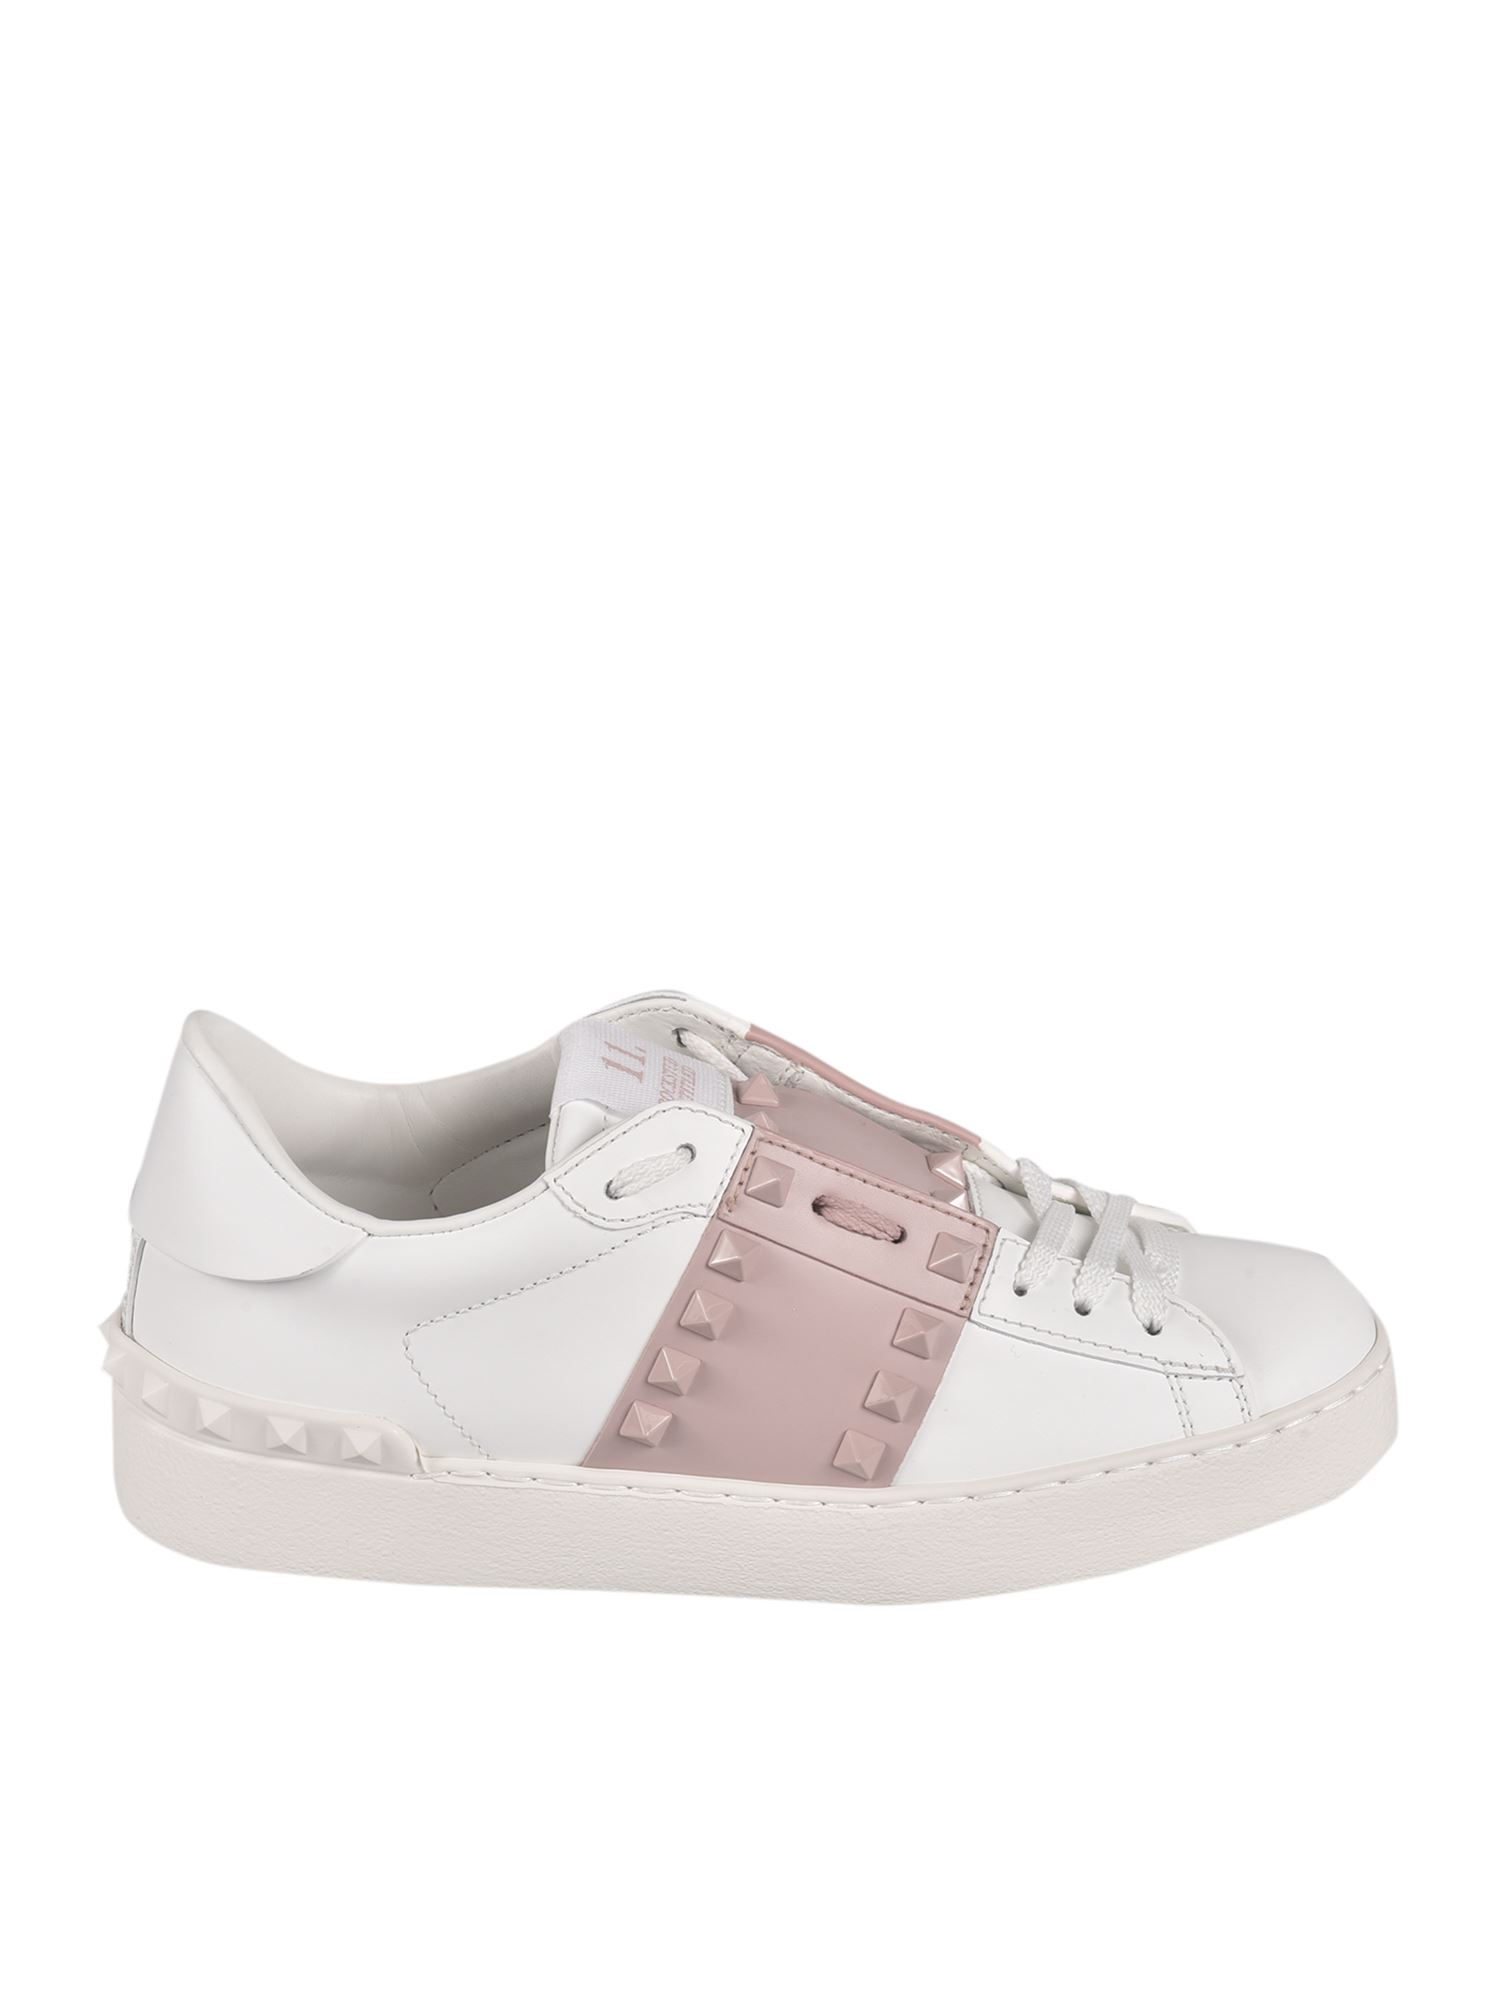 Valentino Leathers ROCKSTUD UNTITLED SNEAKERS IN WHITE AND PINK